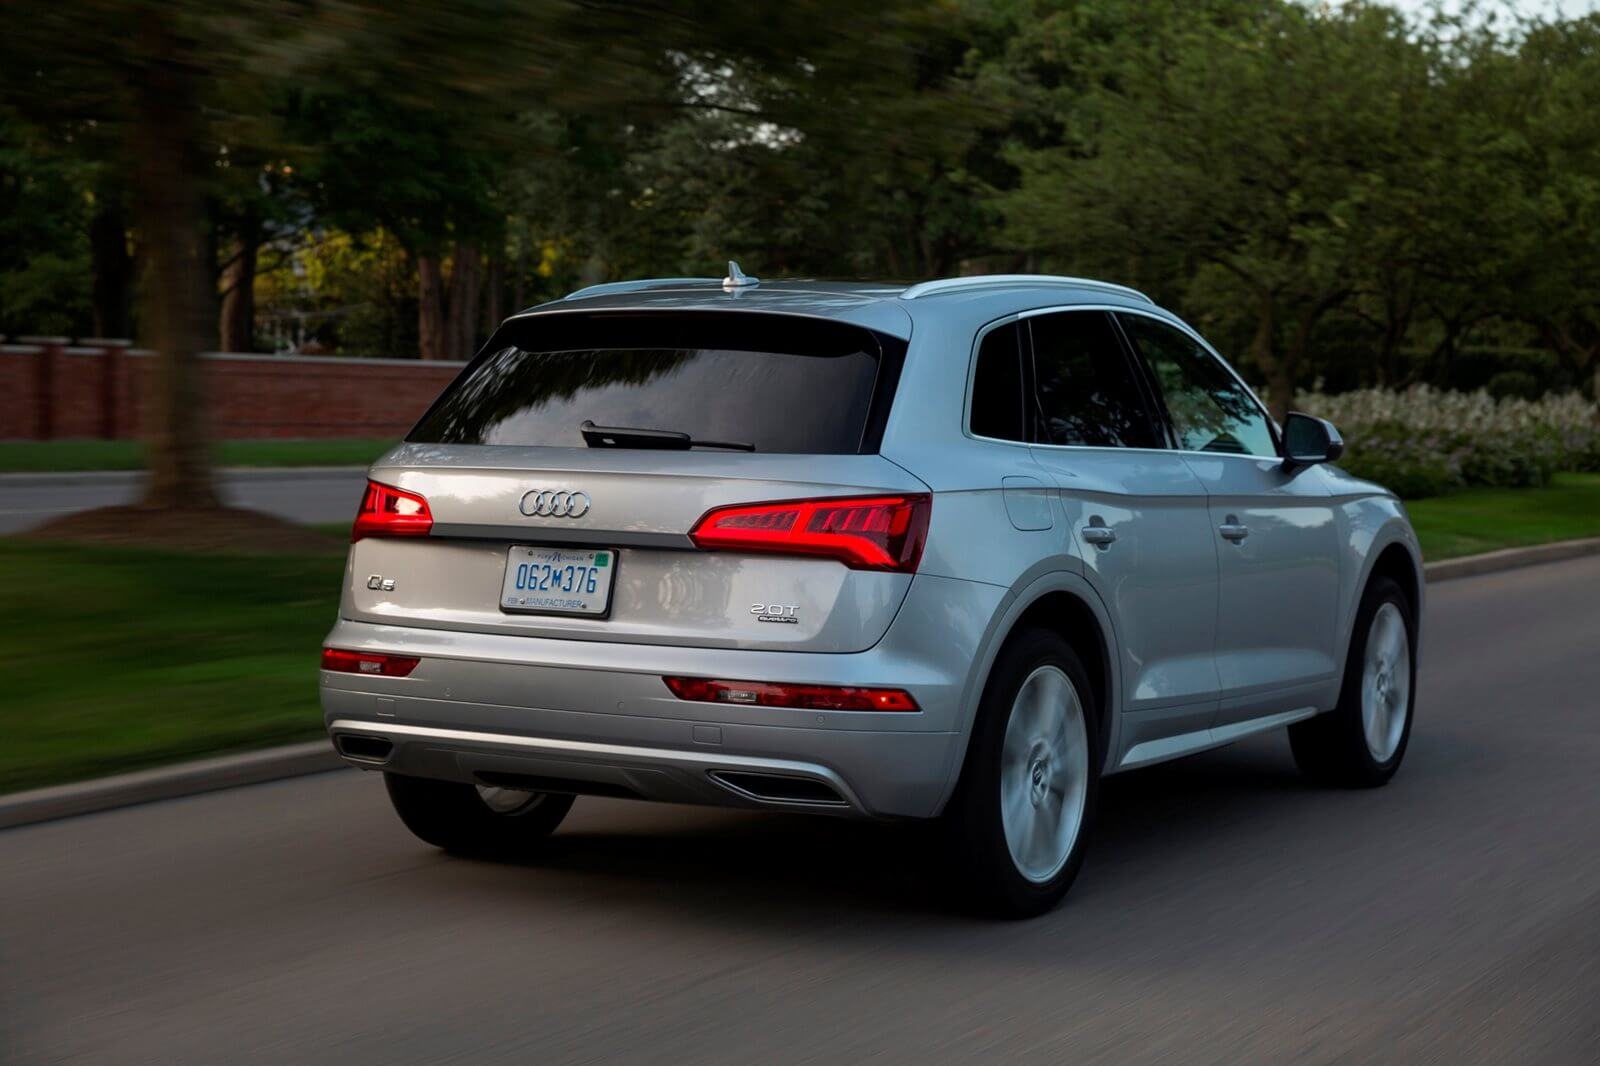 ‫אודי‬ ‫Q5‬ ‫Q5 Design 40 TDI limited‬ ‫‫2.0‬ ‫4X4‬ ‫אוטו'‬ ‫5‬ ‫דל ‫-‬ ‫2020‬ - 4